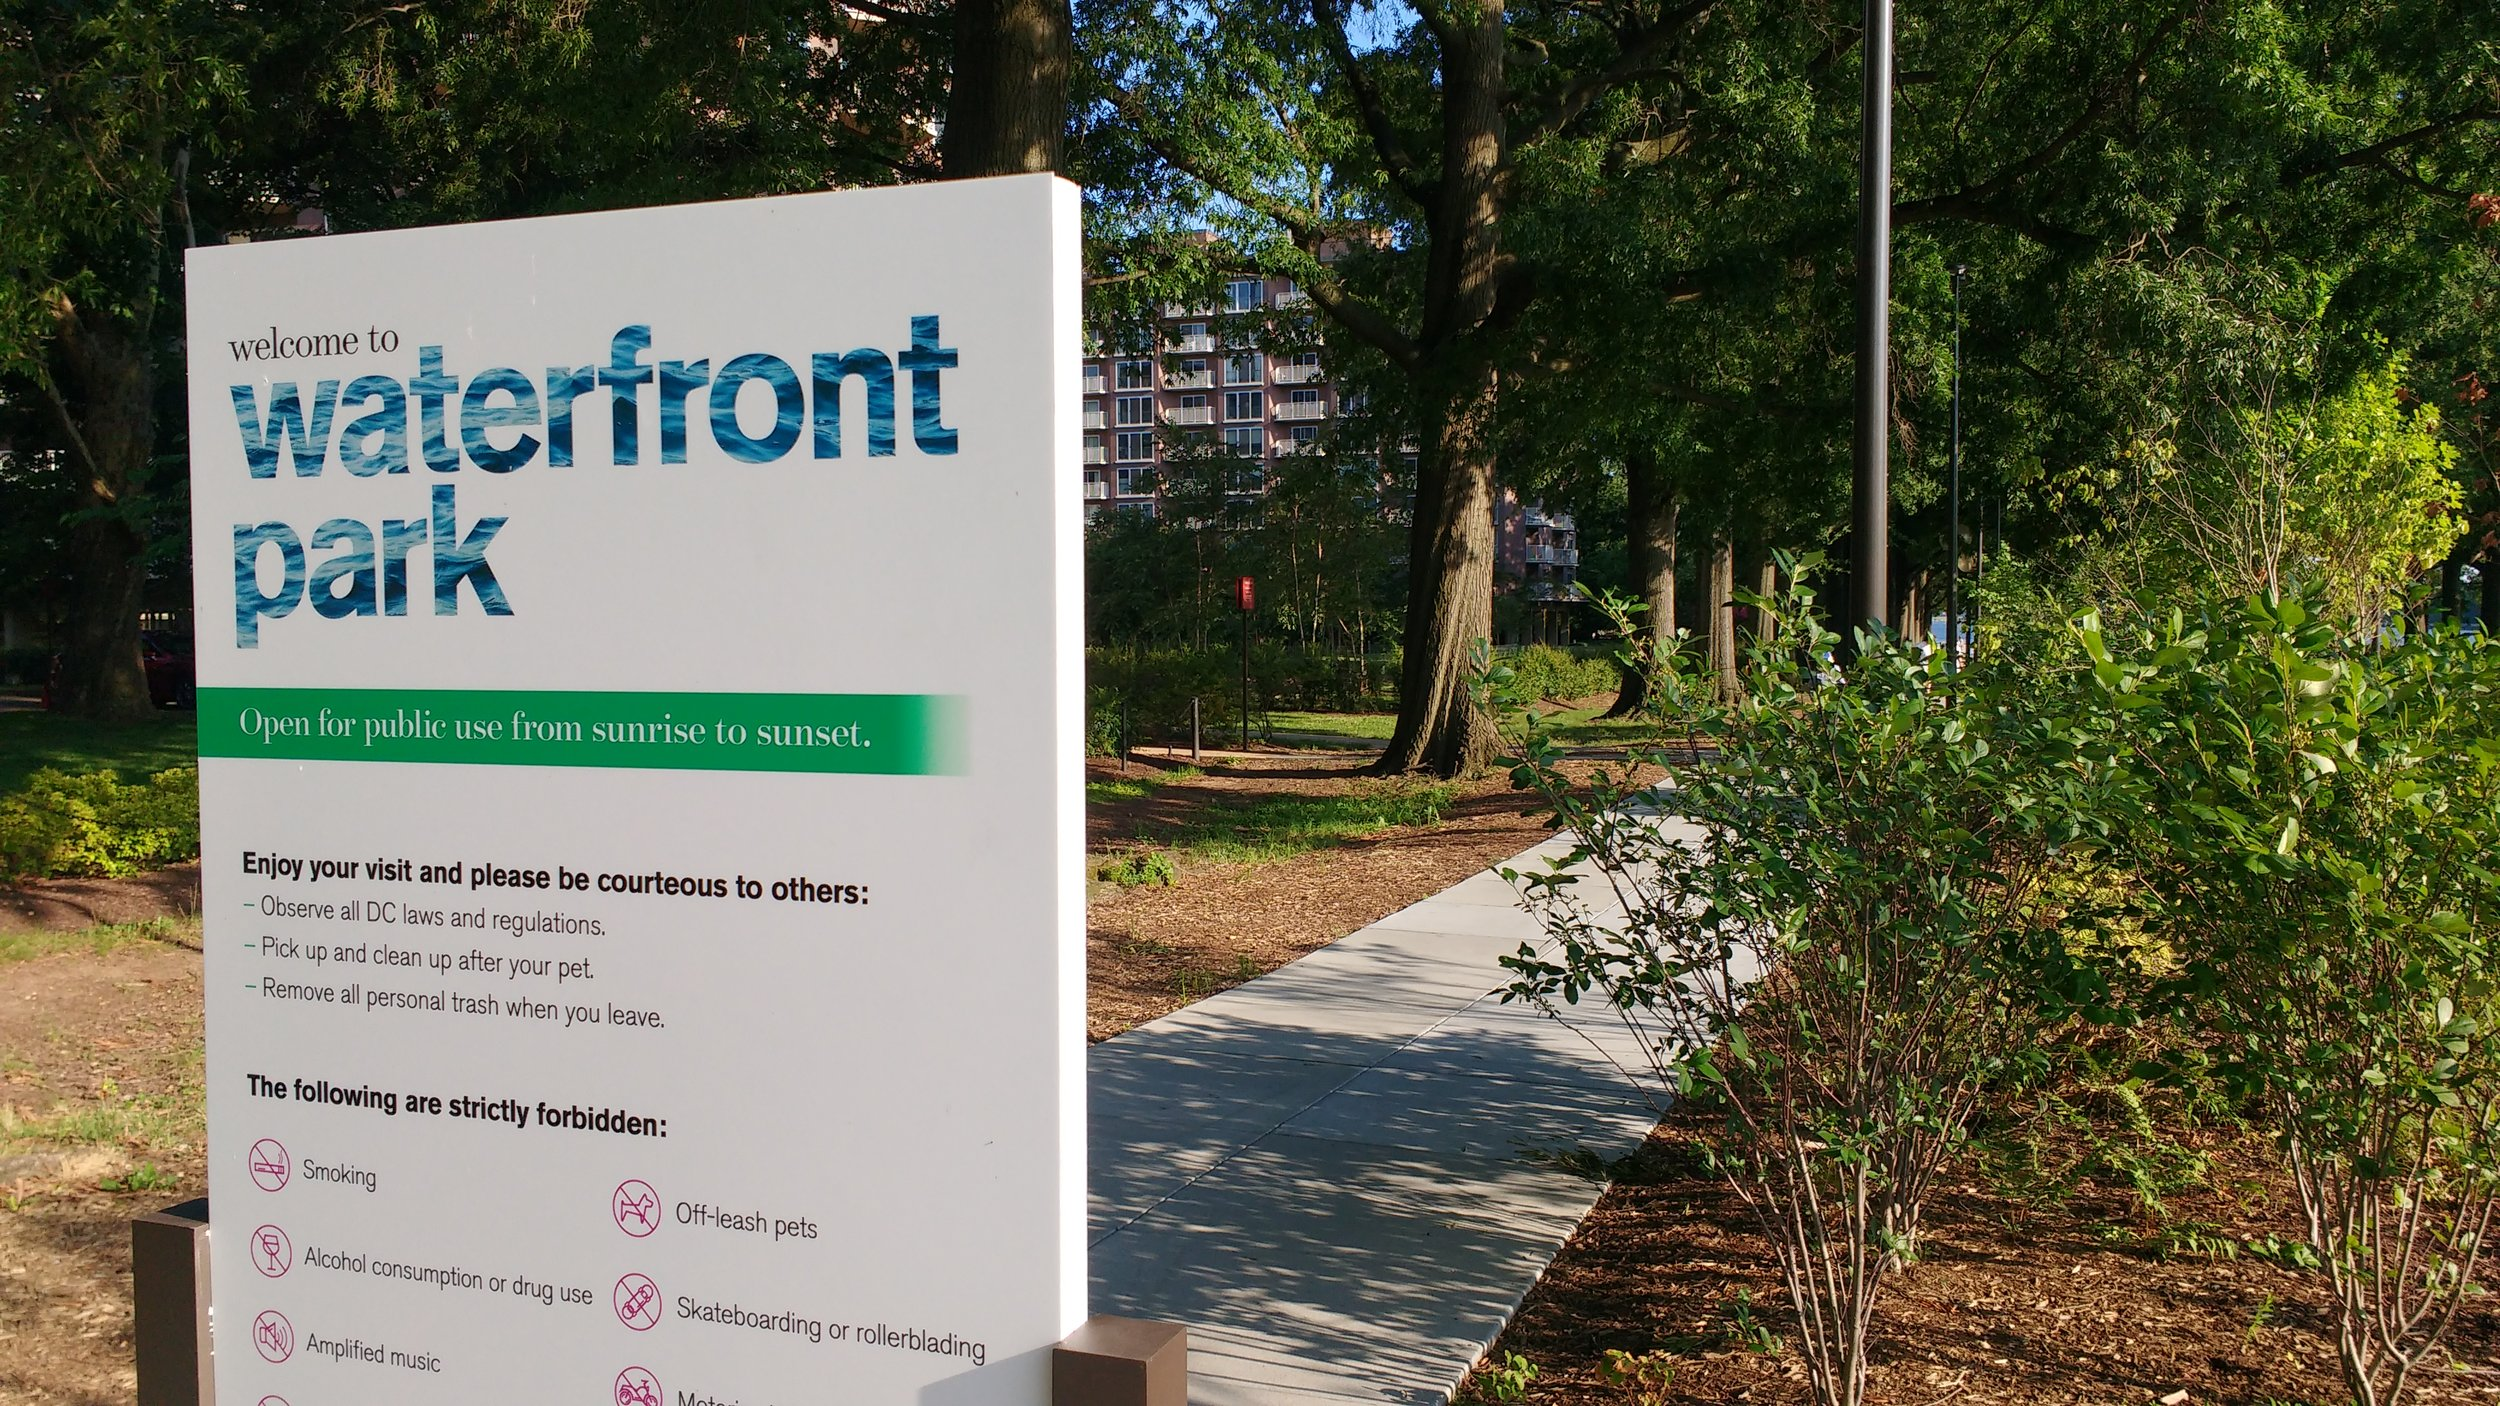 Waterfront_Park-sign.jpg